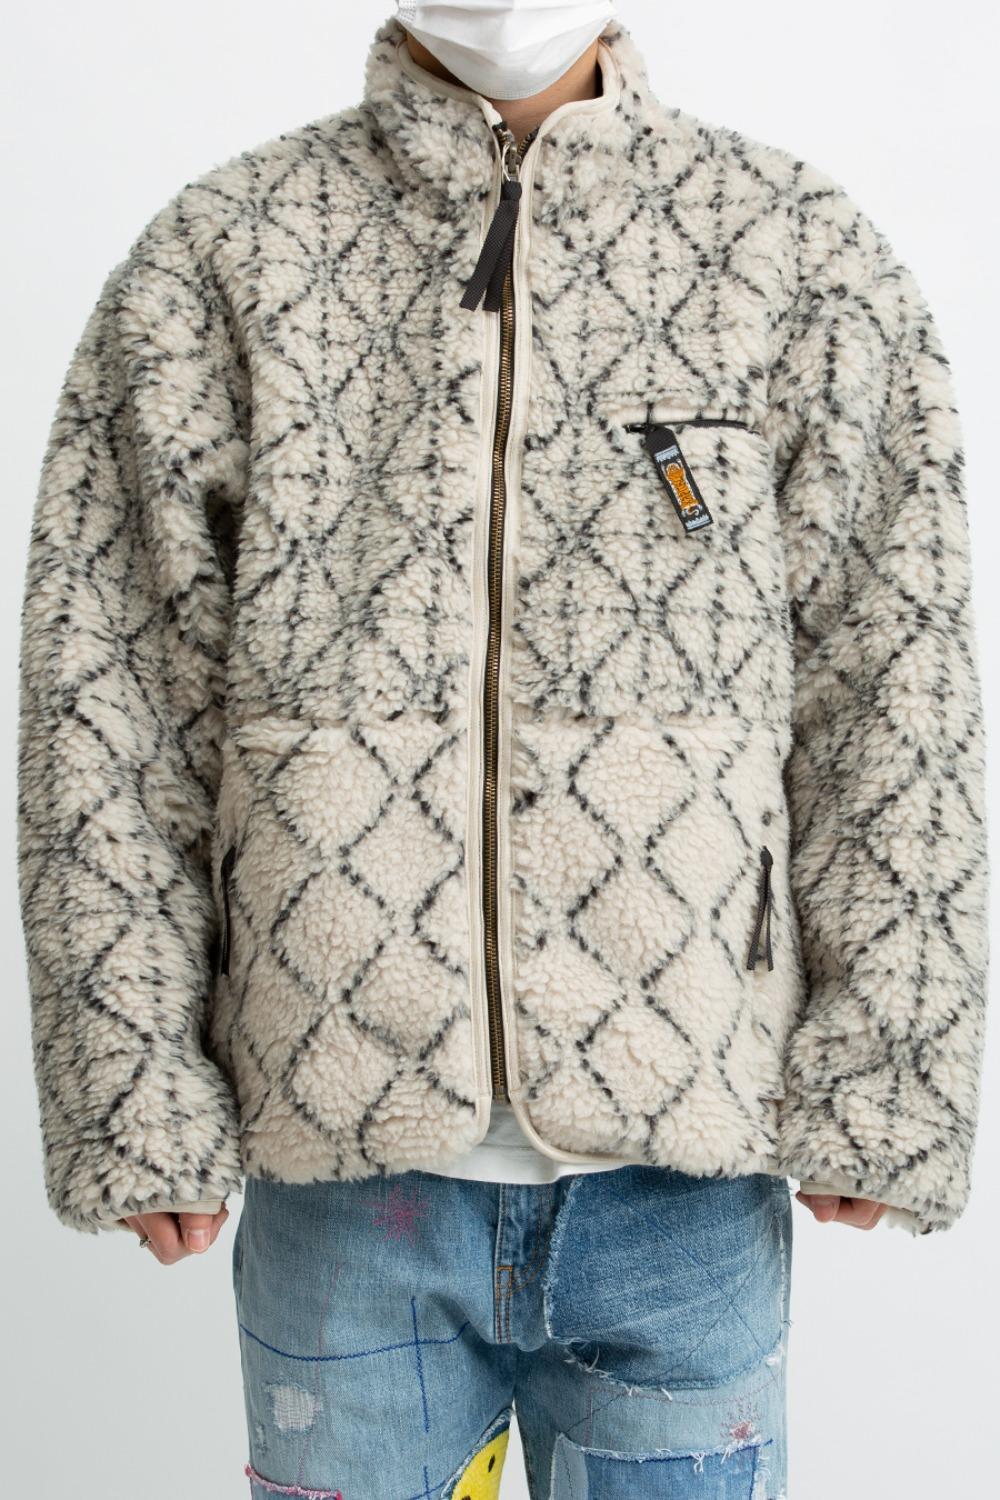 DO-GI SASHIKO BOA FLEECE REVERSIBLE BLOUSON(EK-1025)